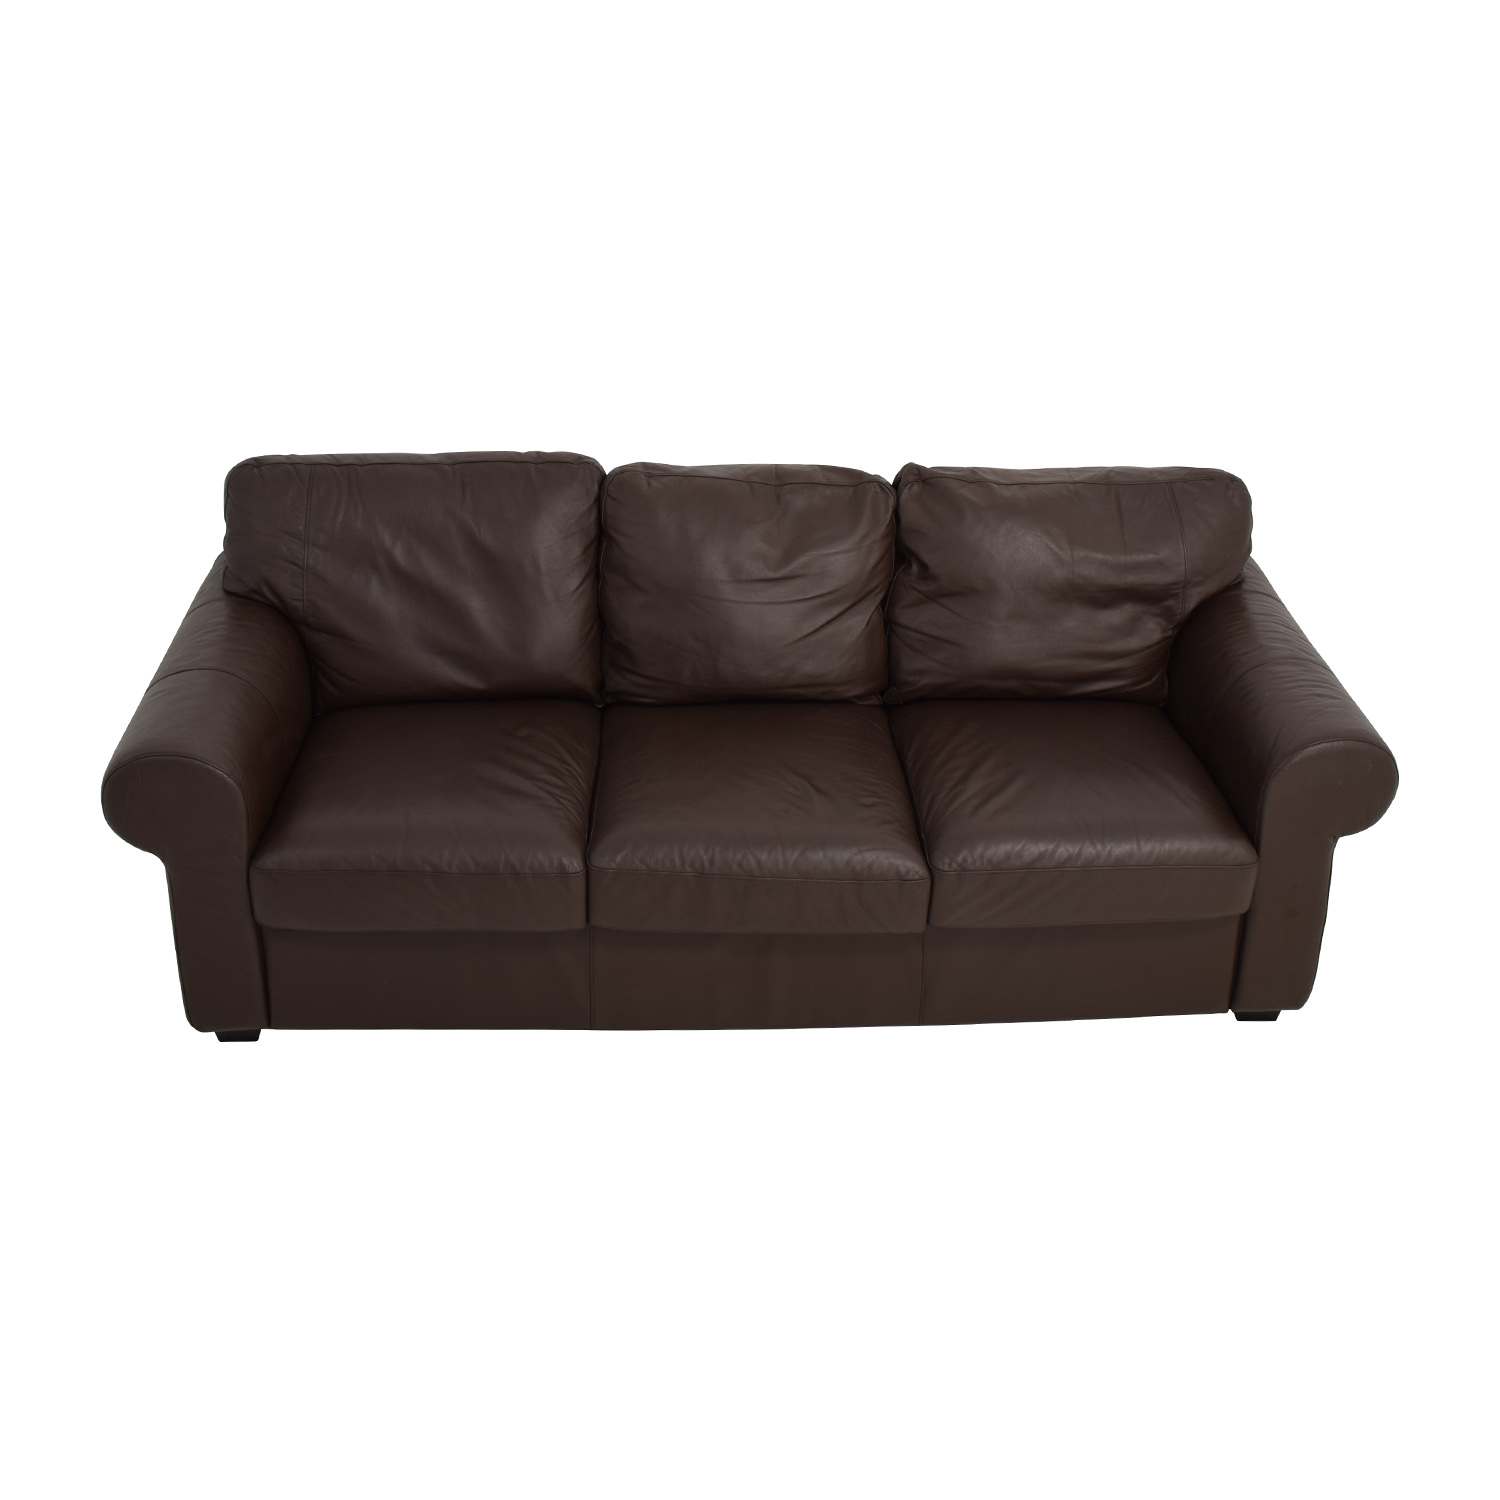 IKEA IKEA Dark Brown Three Cushion Leather Couch discount